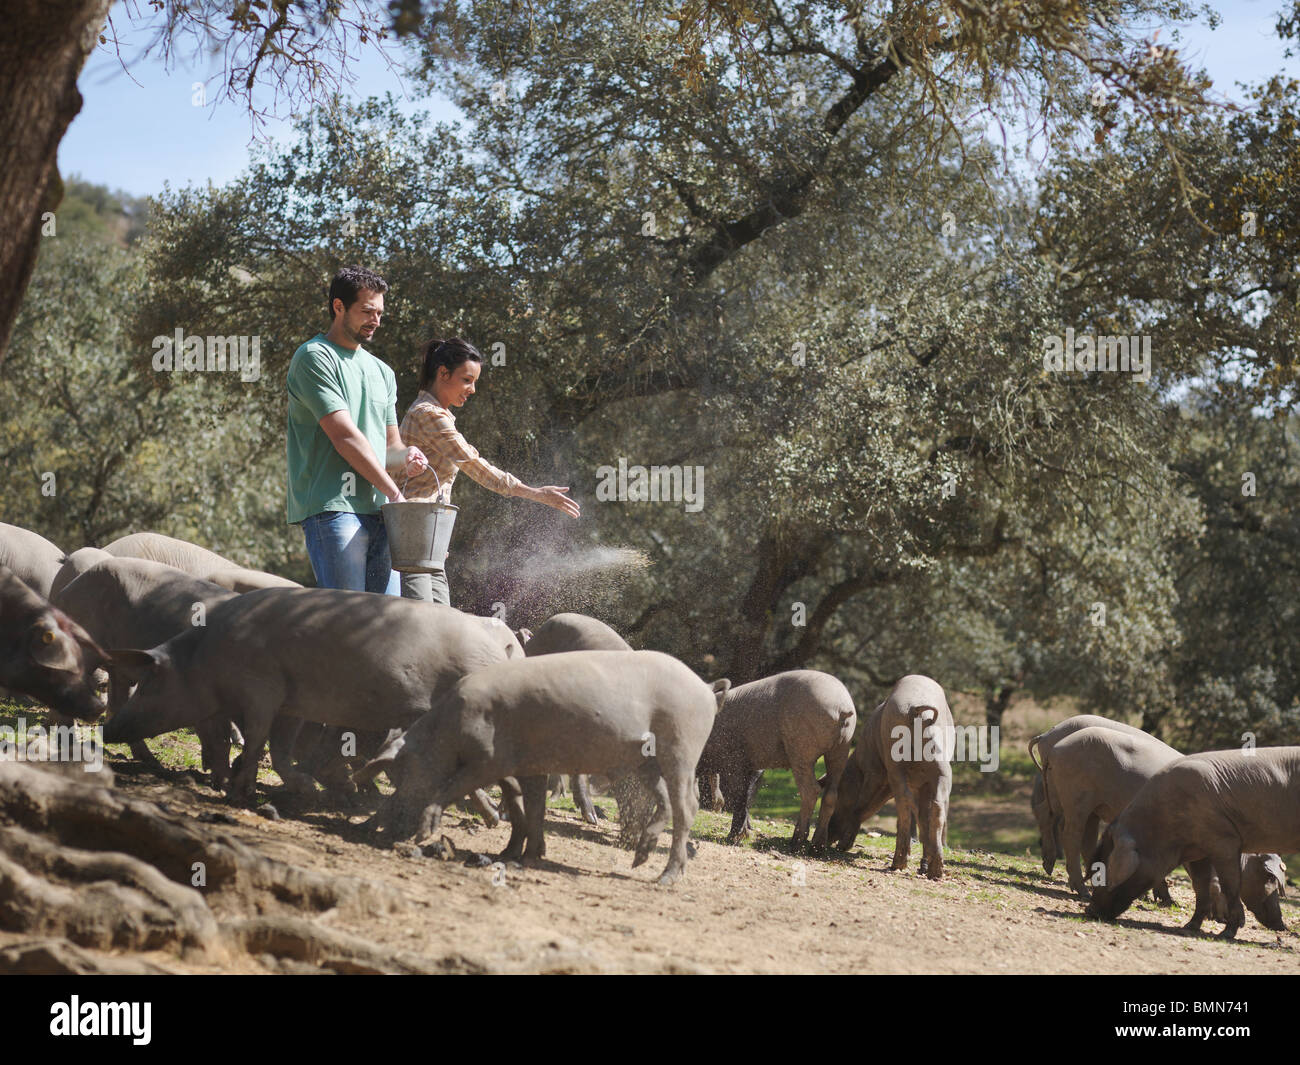 Man and woman on farm feeding pigs - Stock Image